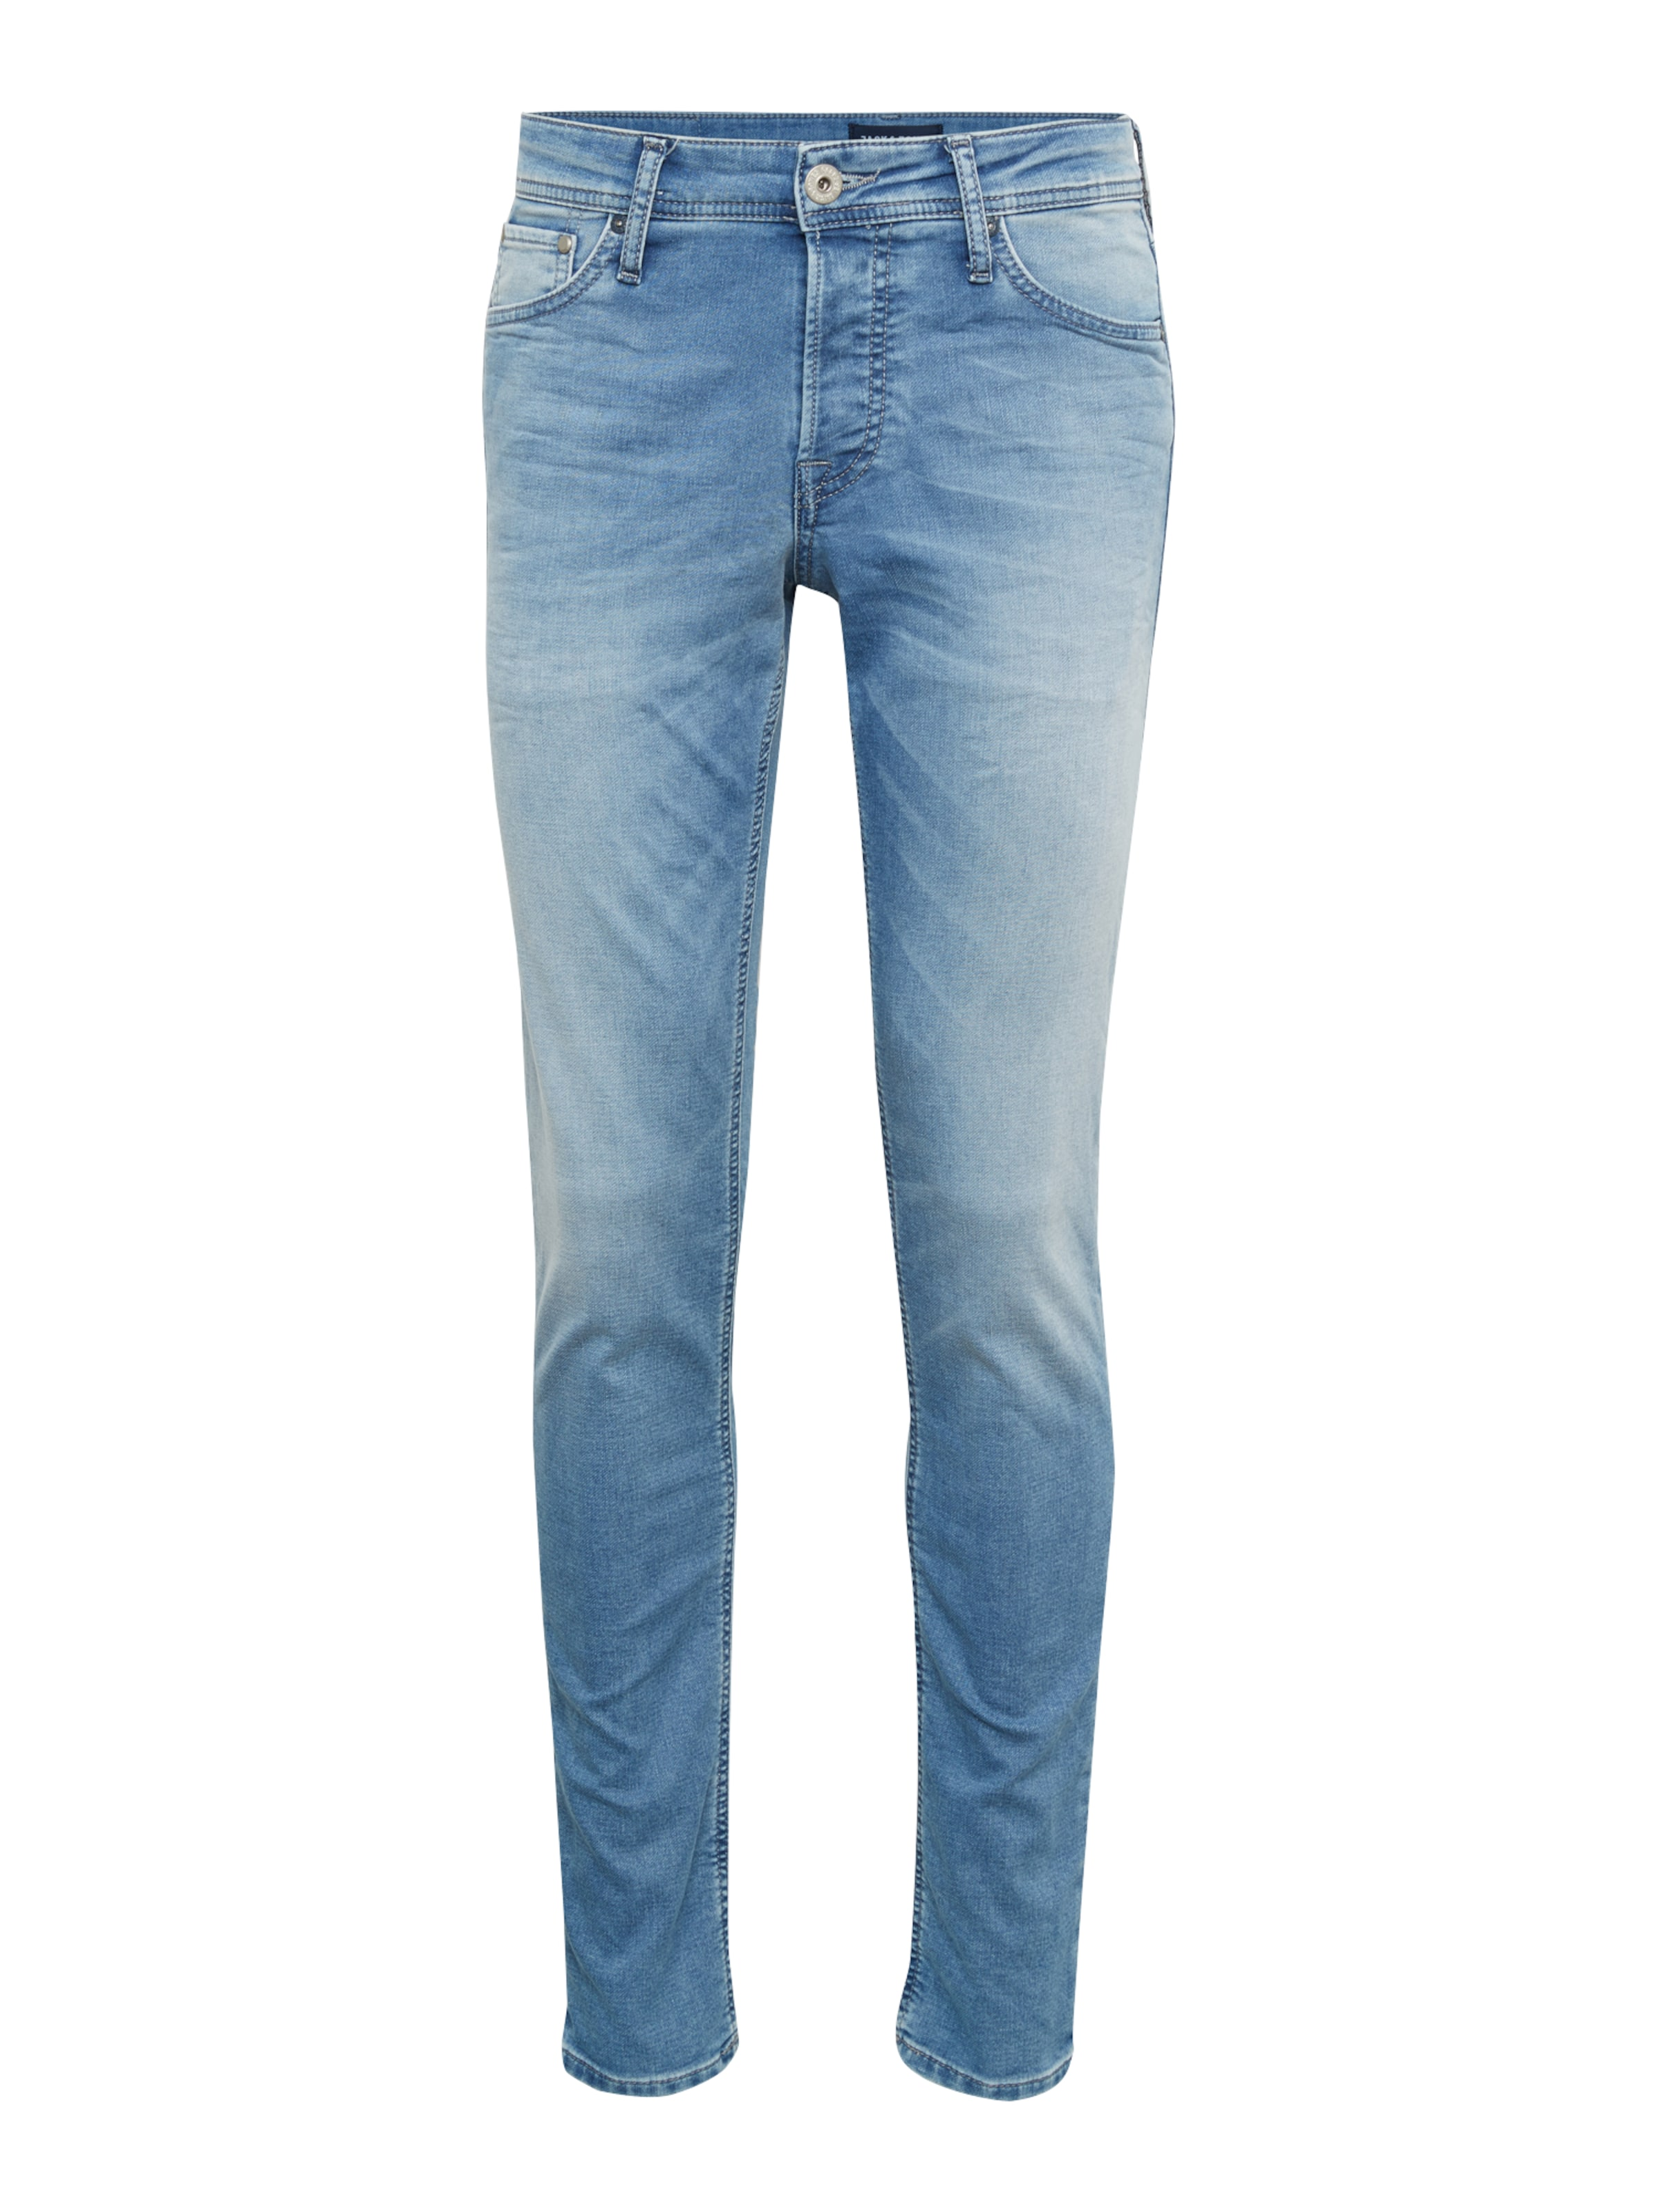 'jjiglenn Bleu Indigo Knit' Jackamp; Jean Jos Jones Jjoriginal En Denim 892 thsrdQ